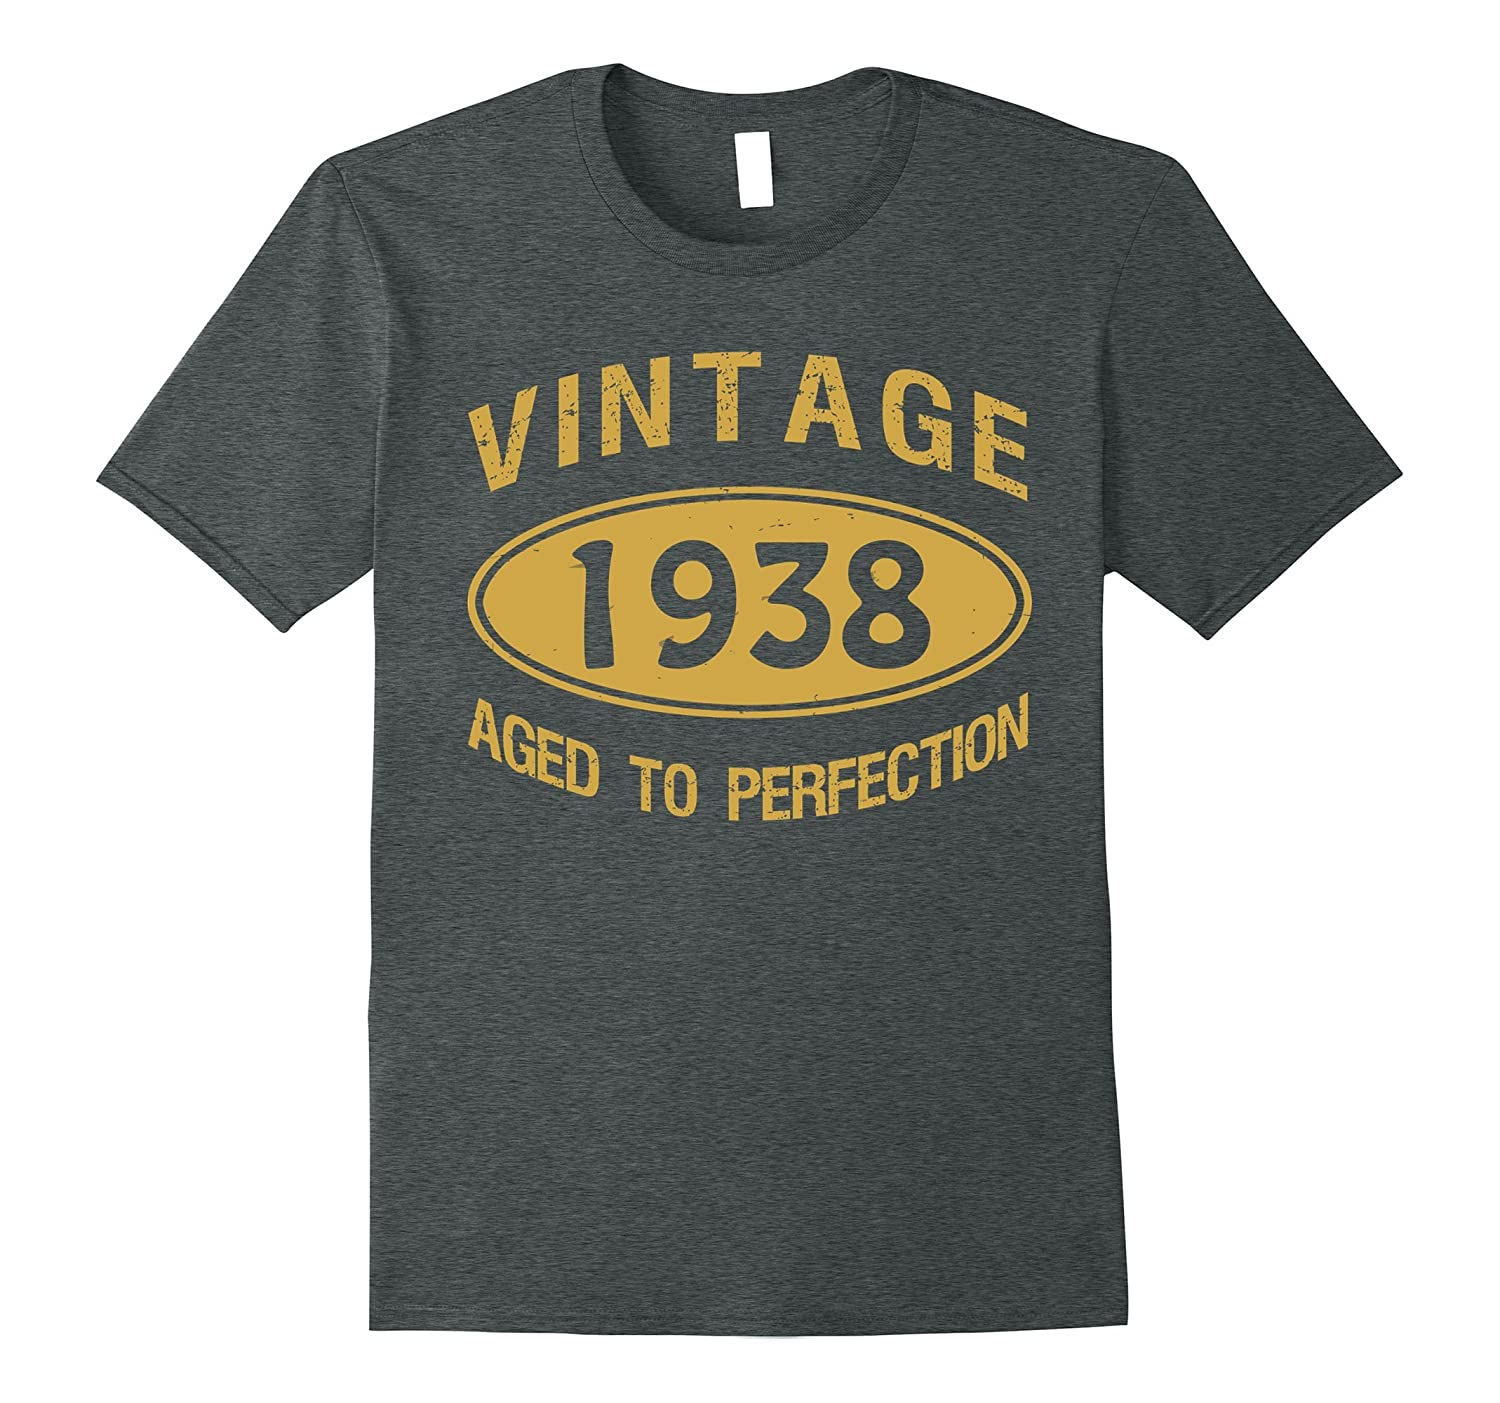 79th Birthday Gift Vintage 1938 Aged To Perfection T-Shirt-Vaci